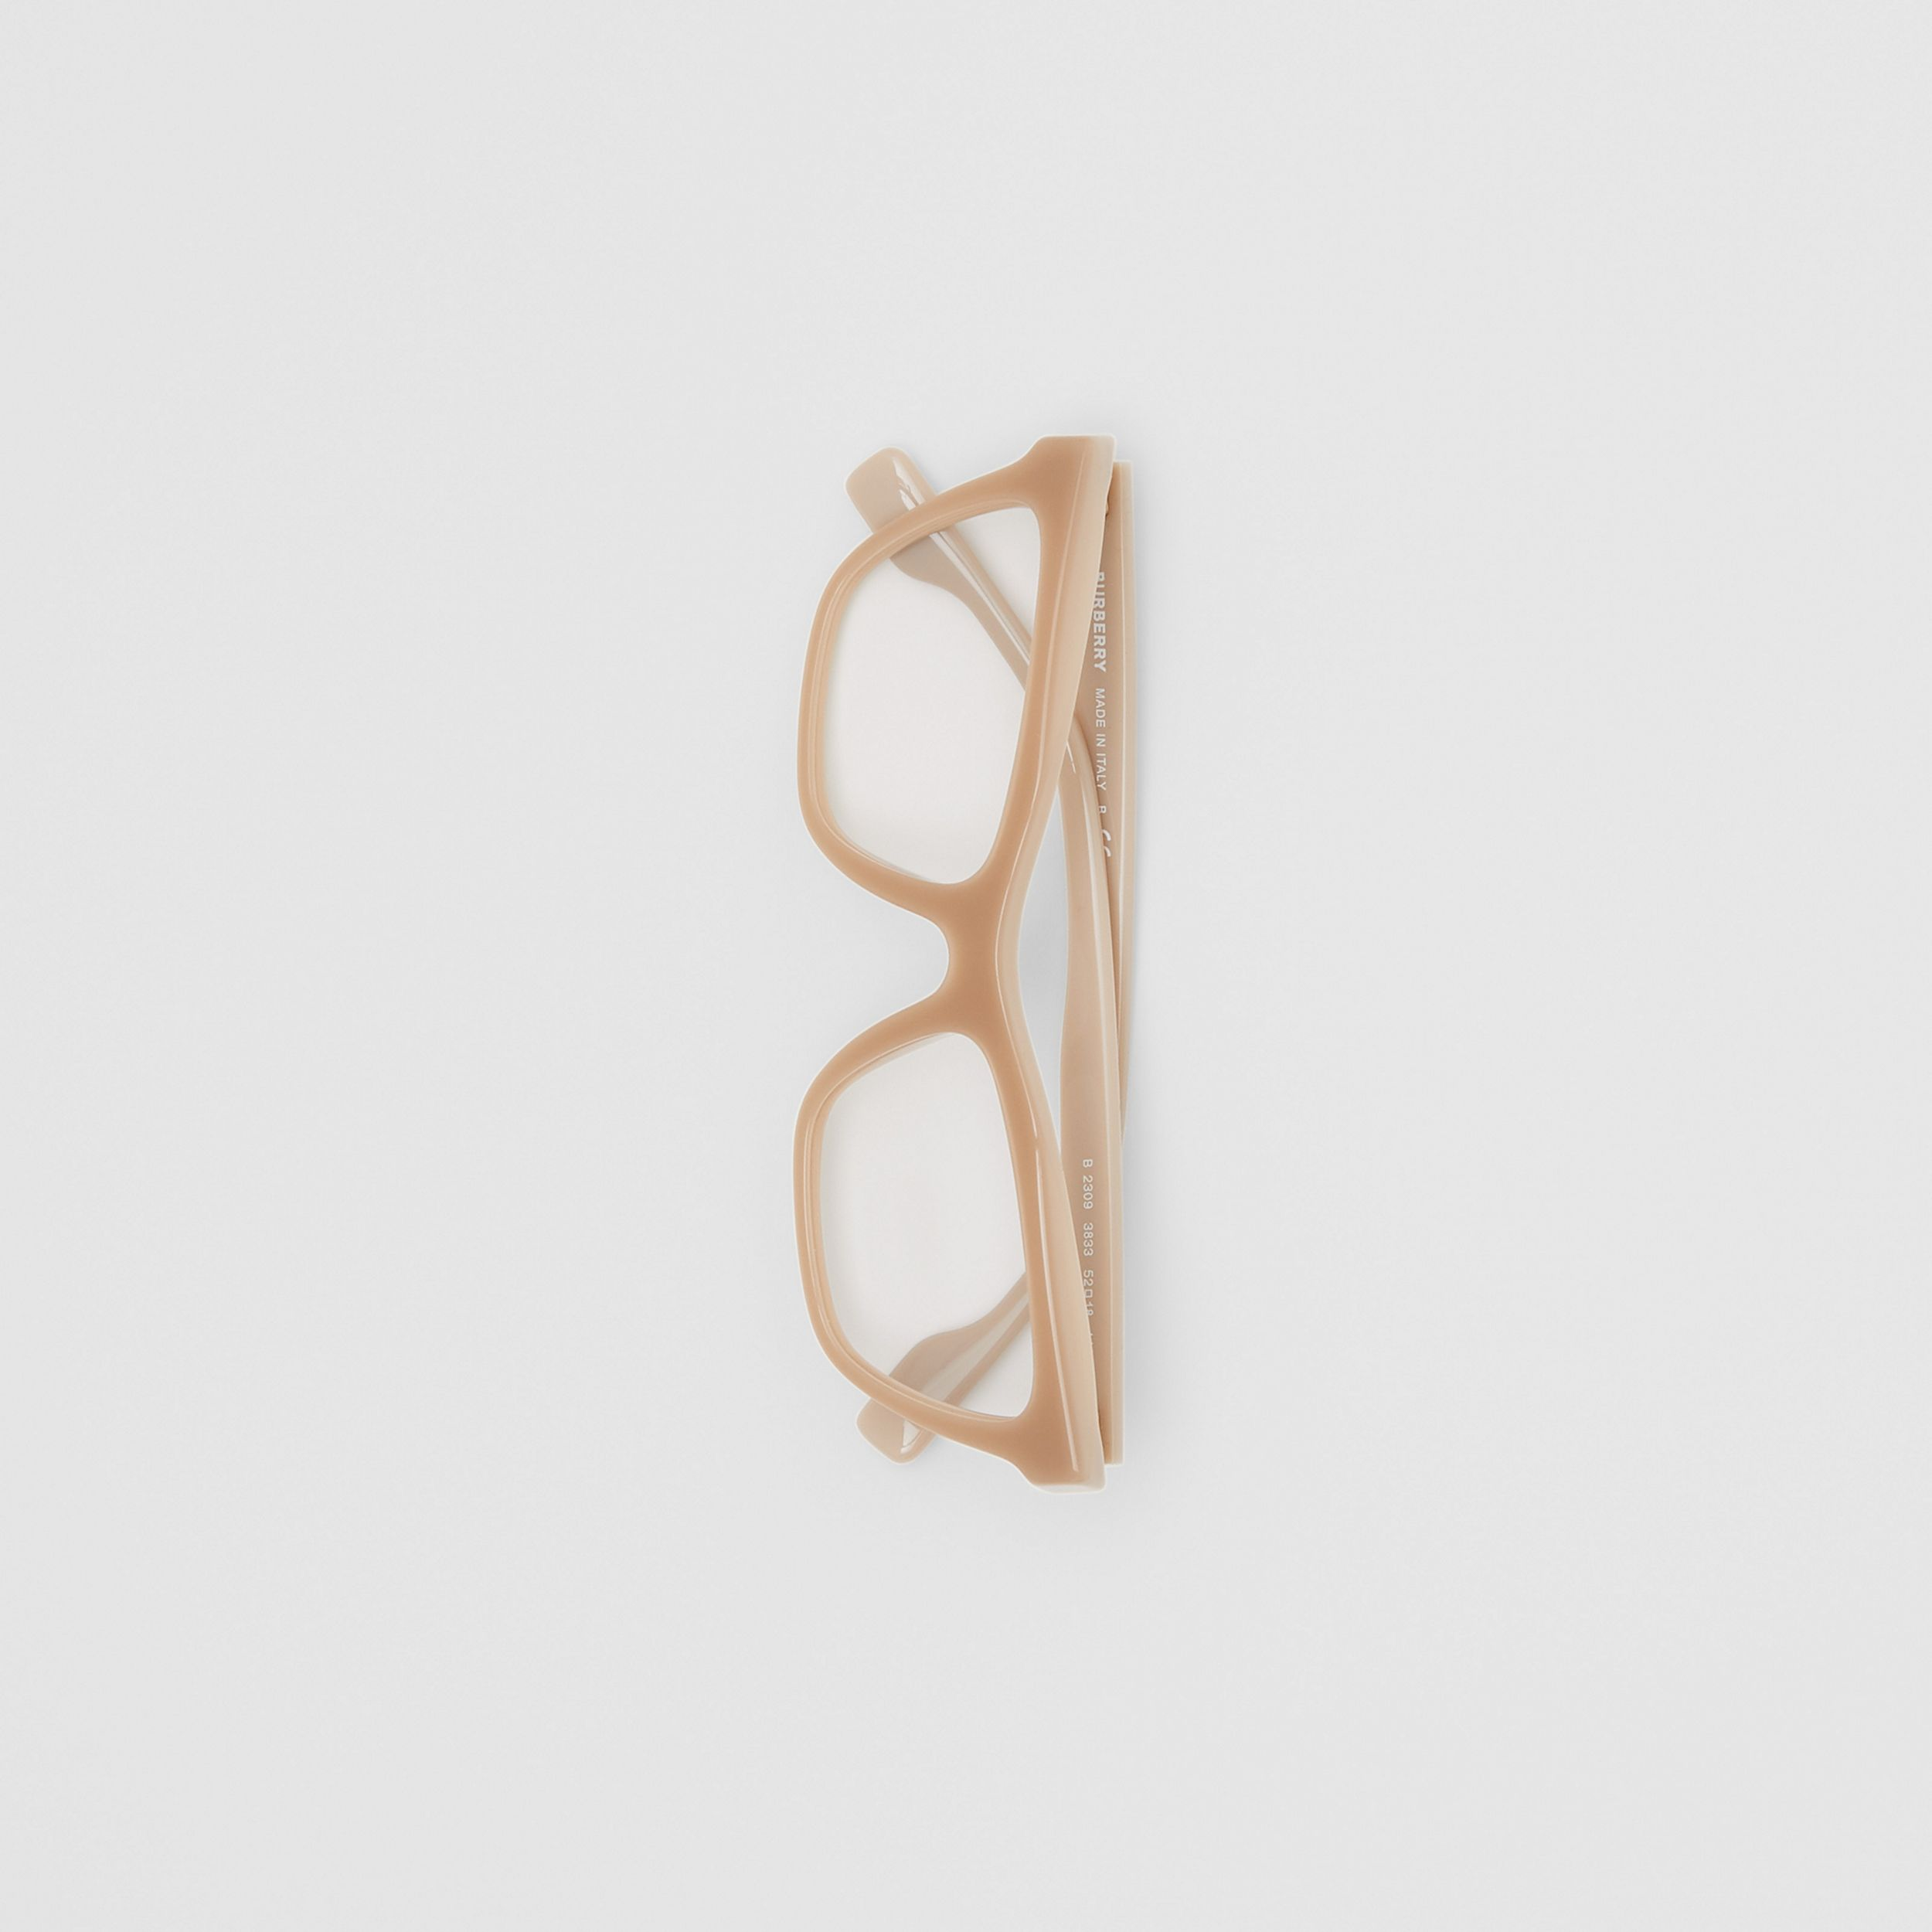 Rectangular Optical Frames in Peach - Women | Burberry - 4